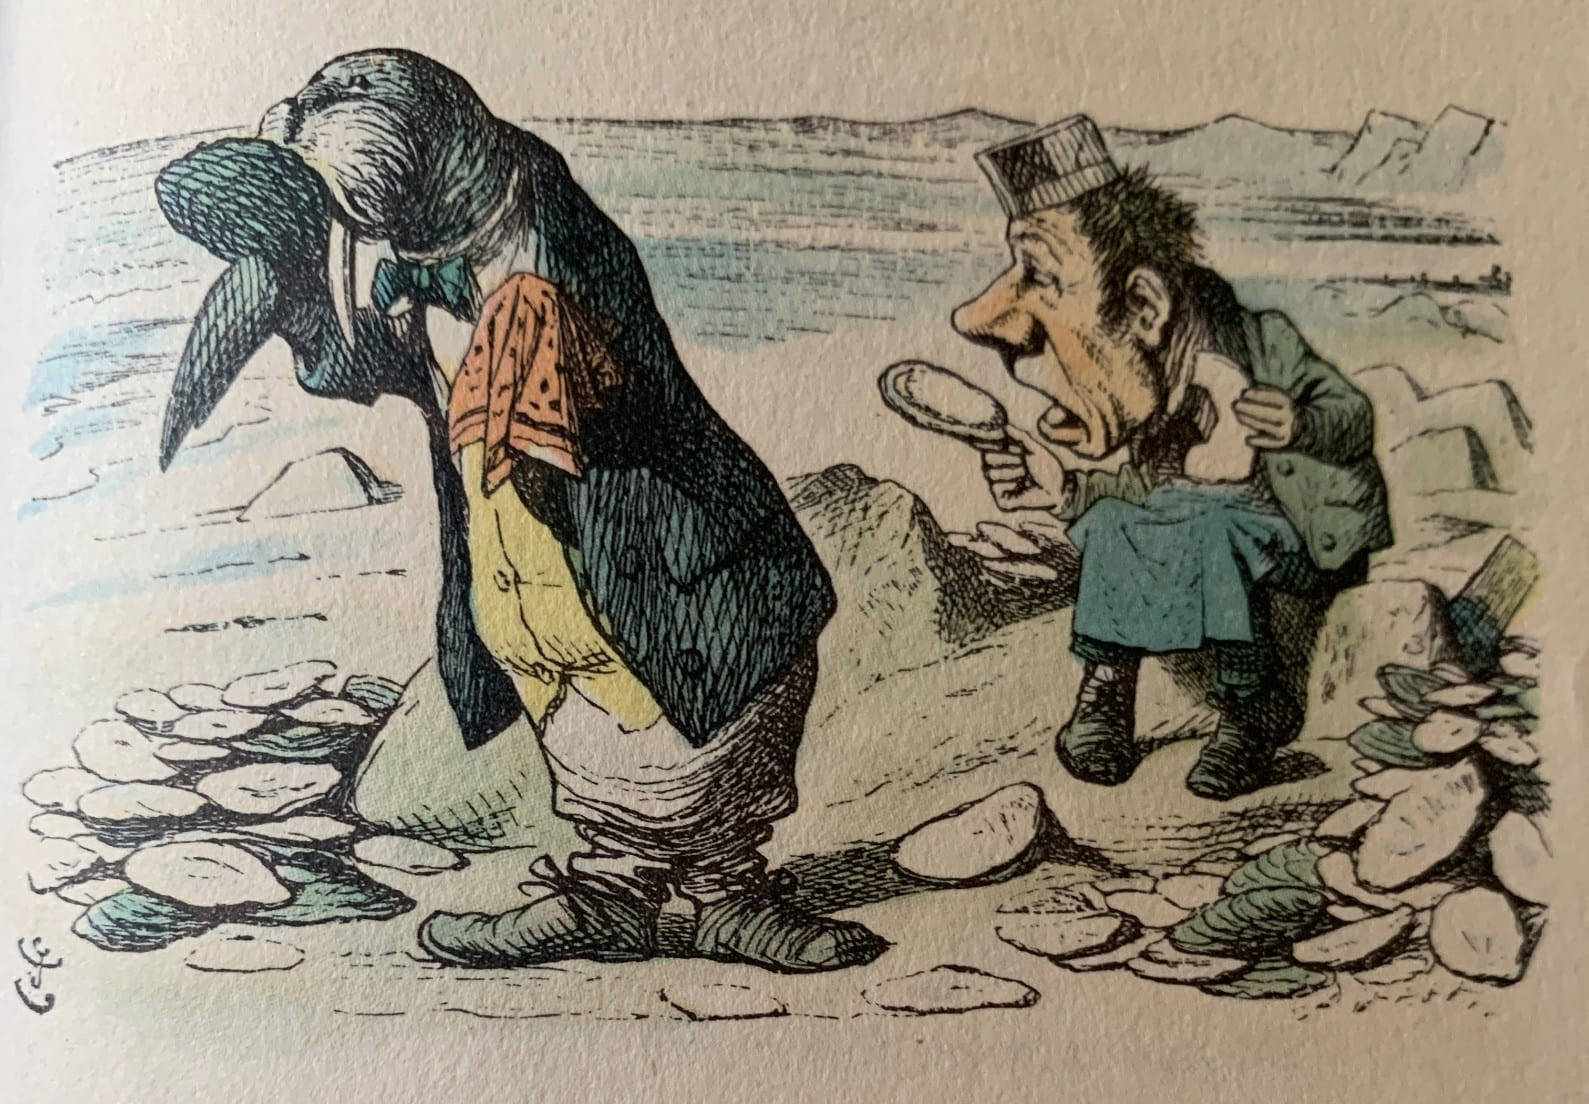 Tenniel illustration from Through the Looking Glass